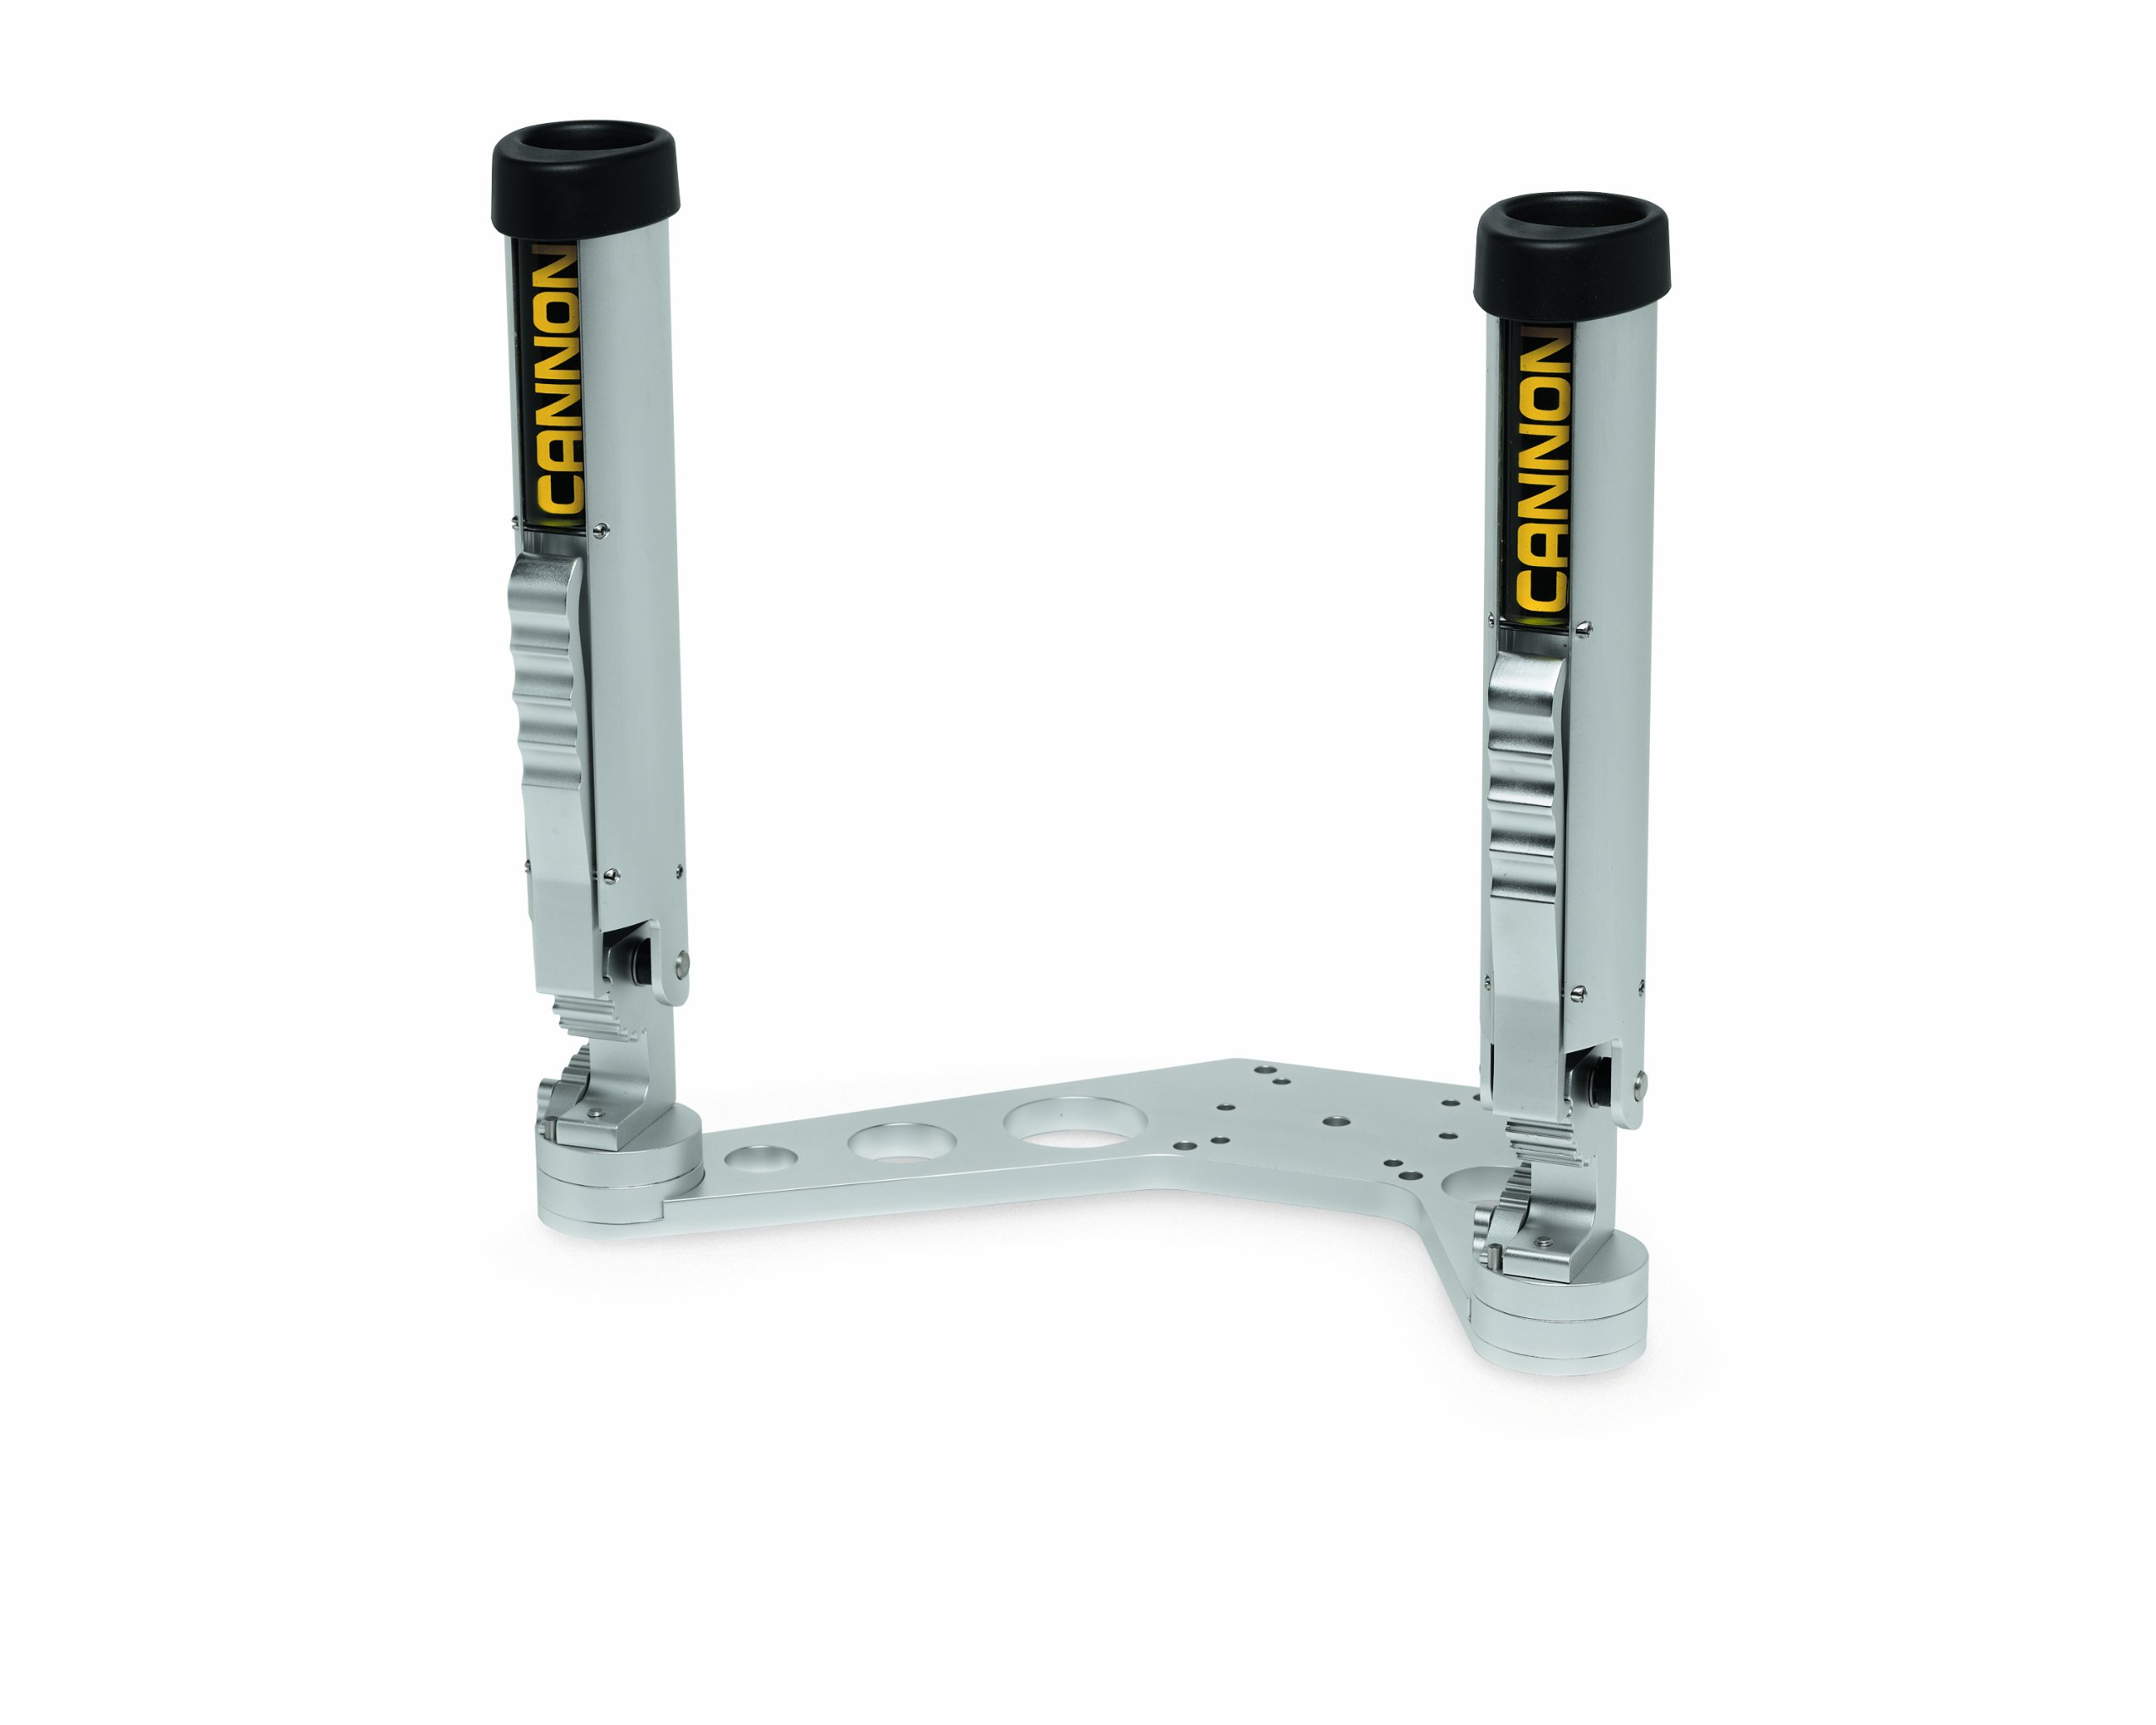 Cannon Dual Axis Adjustable Rod Holder by Johnson Outdoors